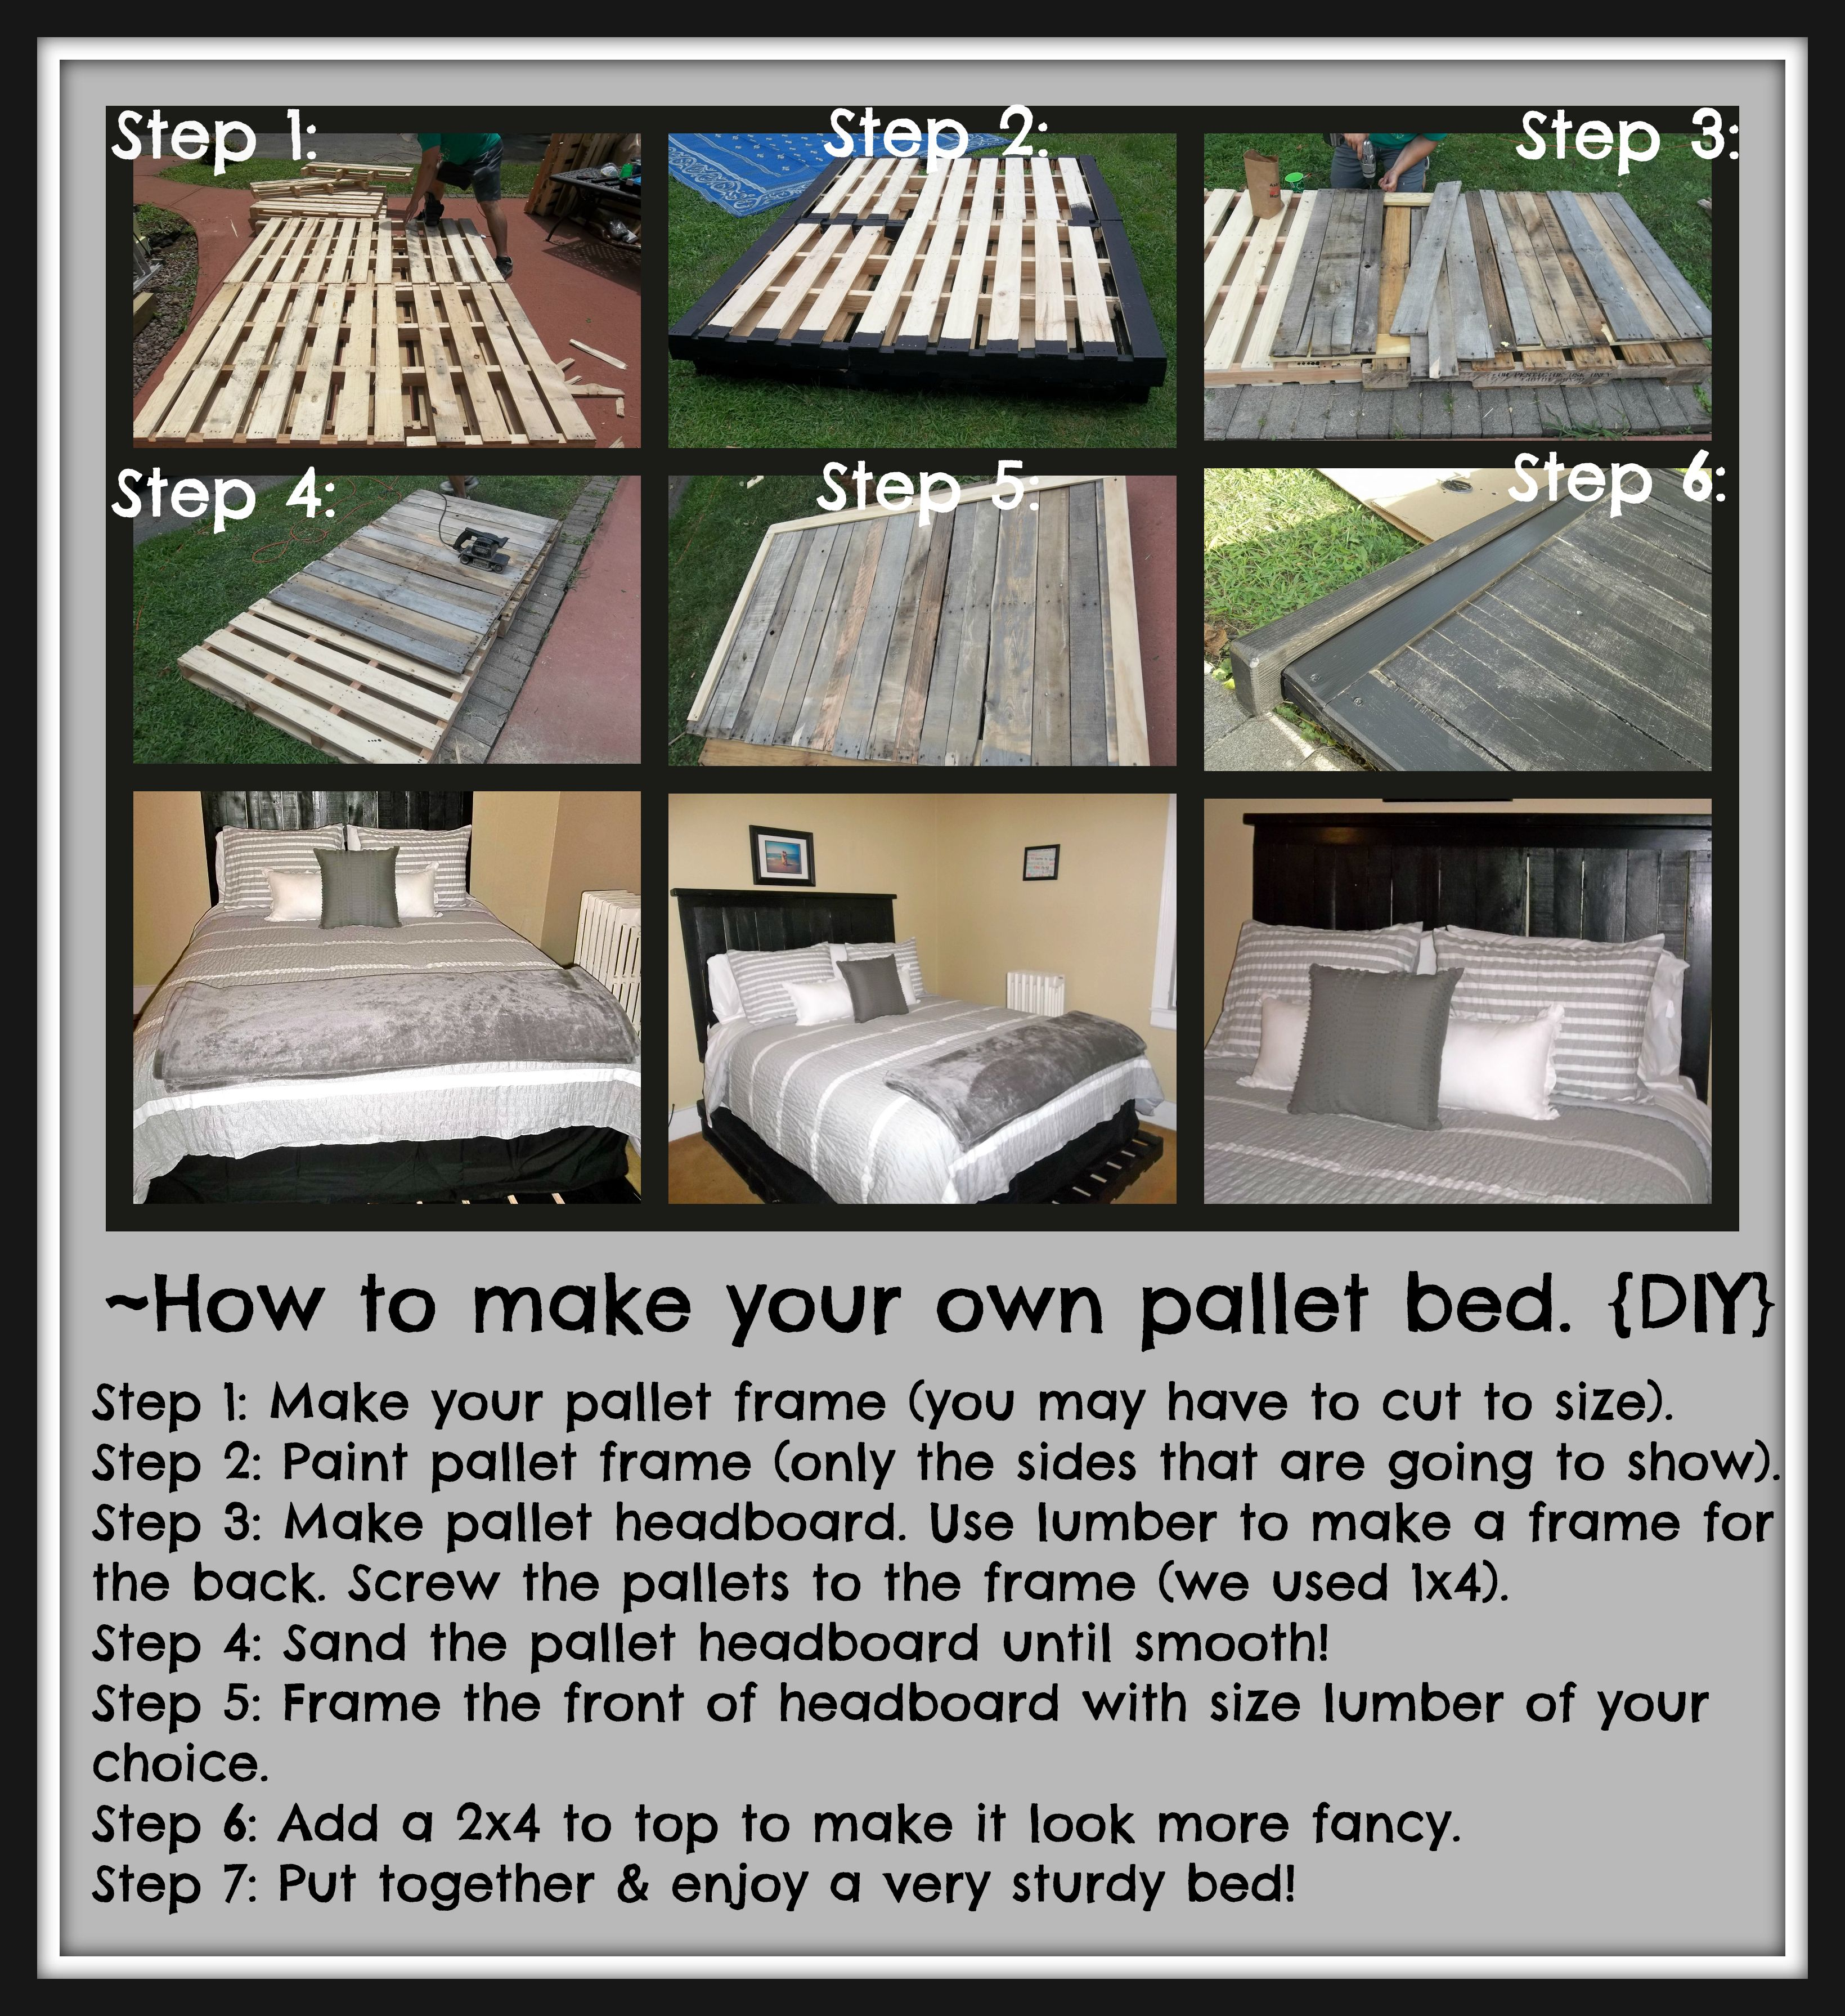 How to make your very own pallet bed diy craft well for How do you make a pallet bed